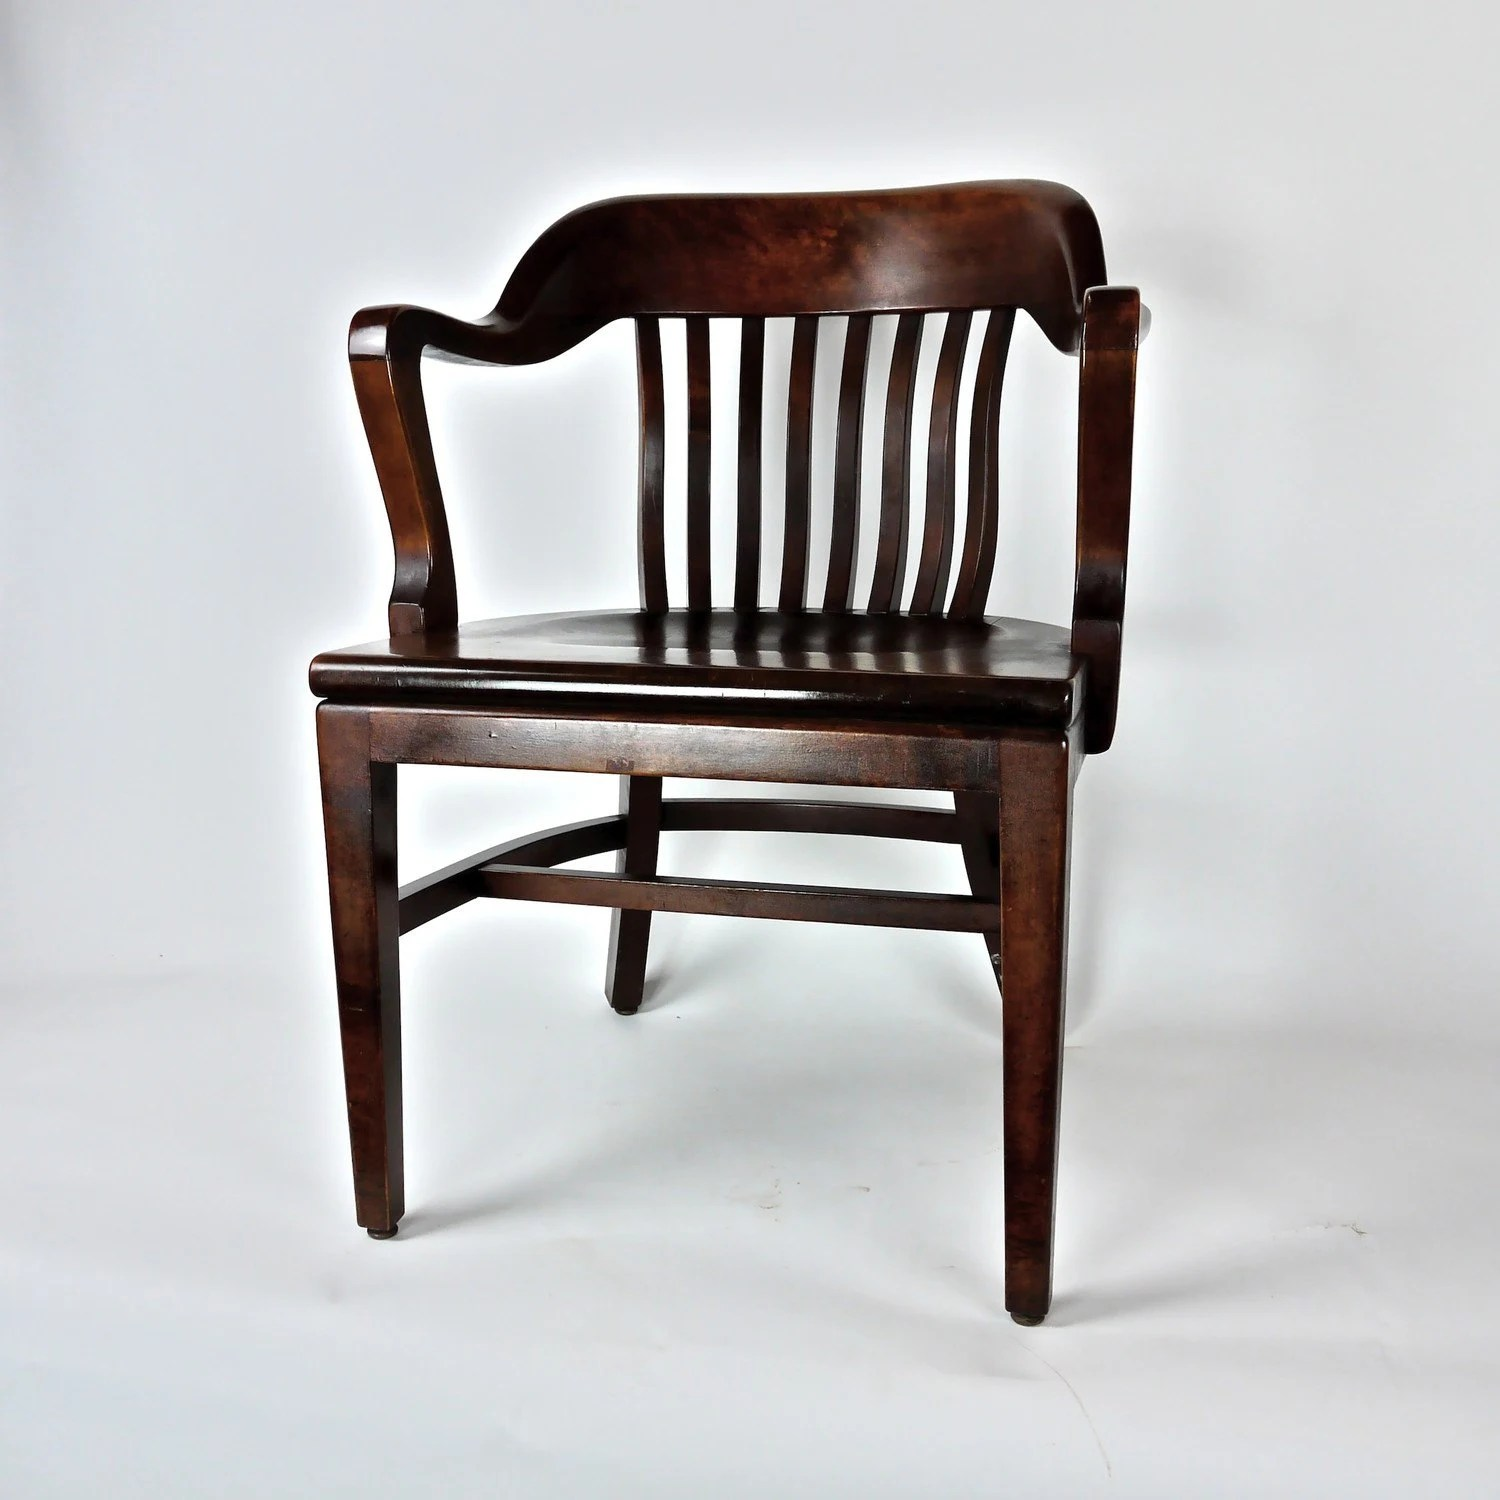 Antique Wooden Chair Antique Post War Wooden Office Library Chair